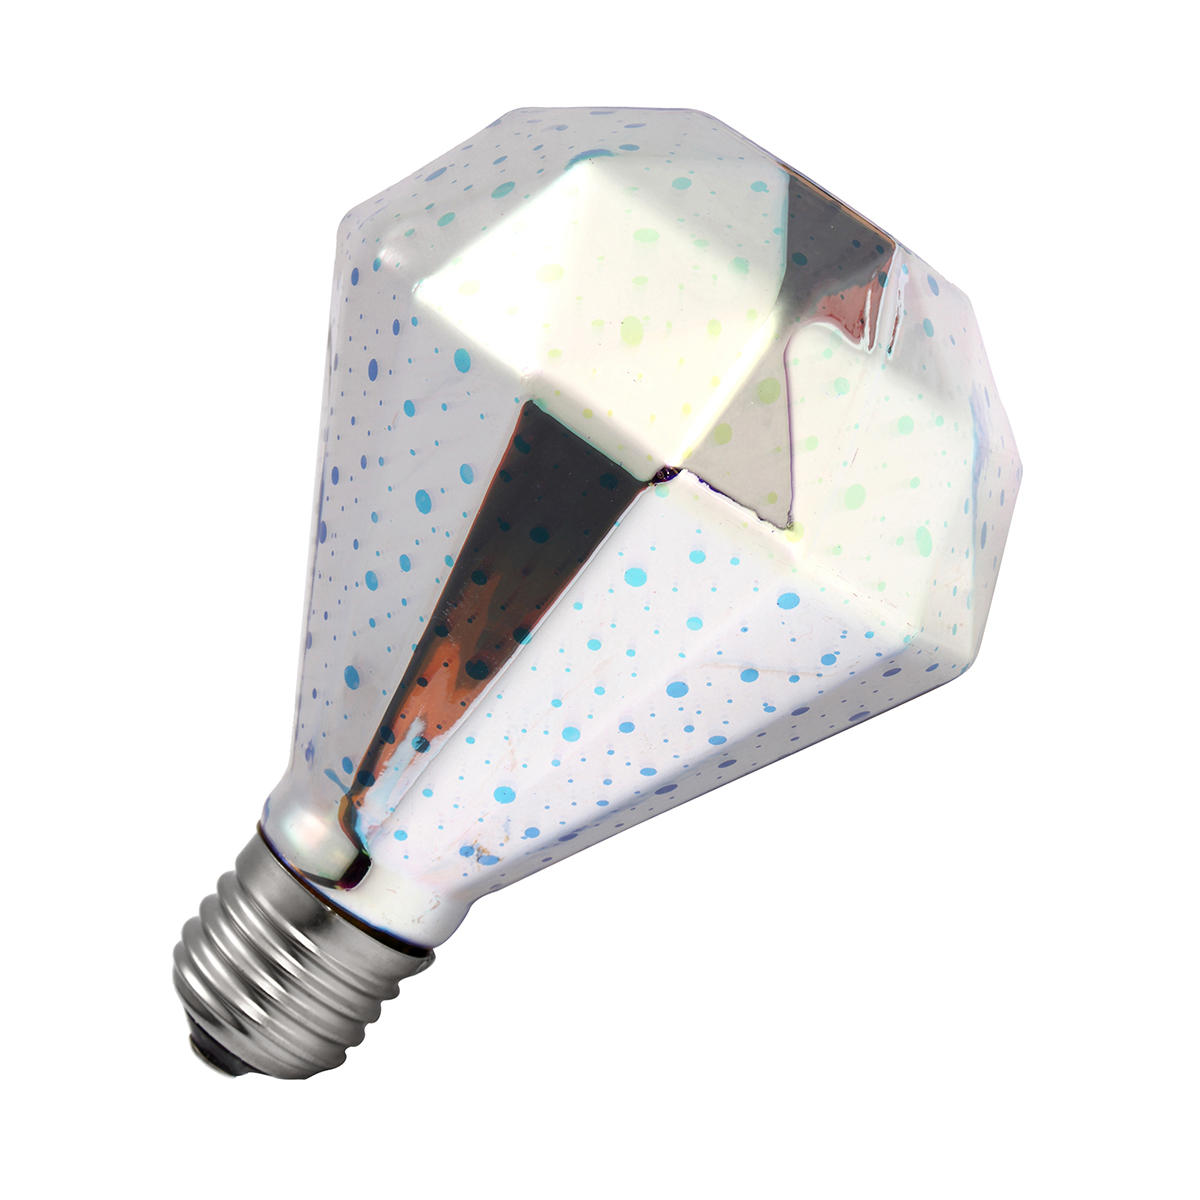 Retro Led E27 E27 G95 4w 3d Fireworks Led Retro Vintage Fairy Light Bulb